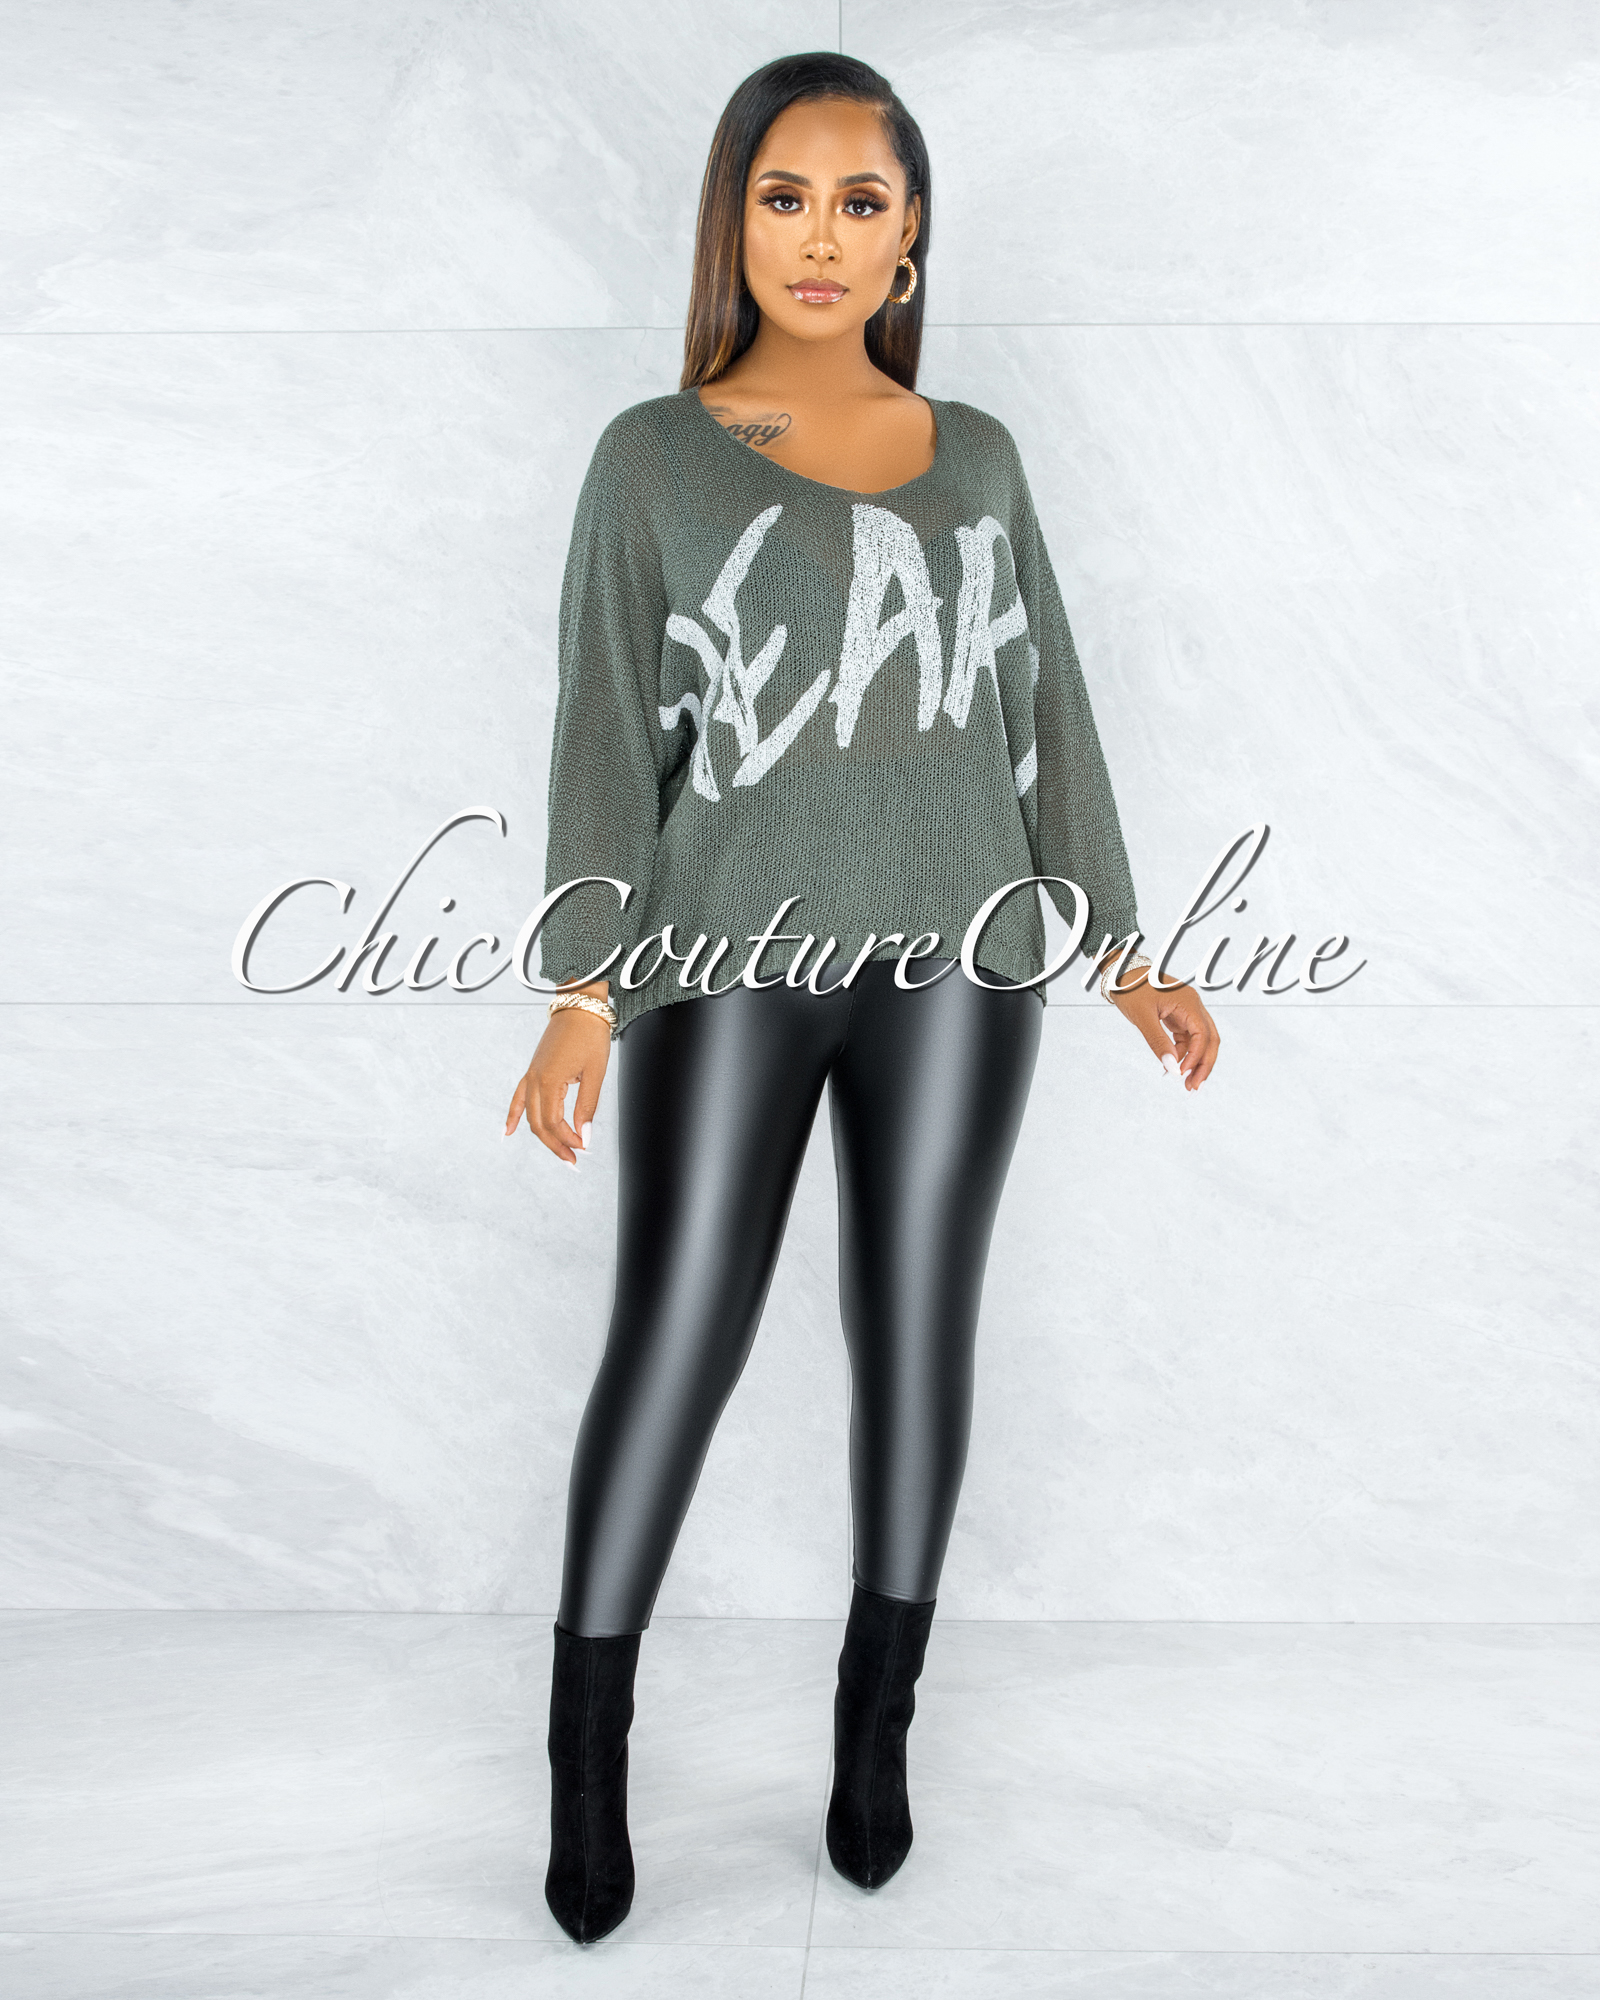 Coleman Olive HEART Graphic Knit Sheer Sweater